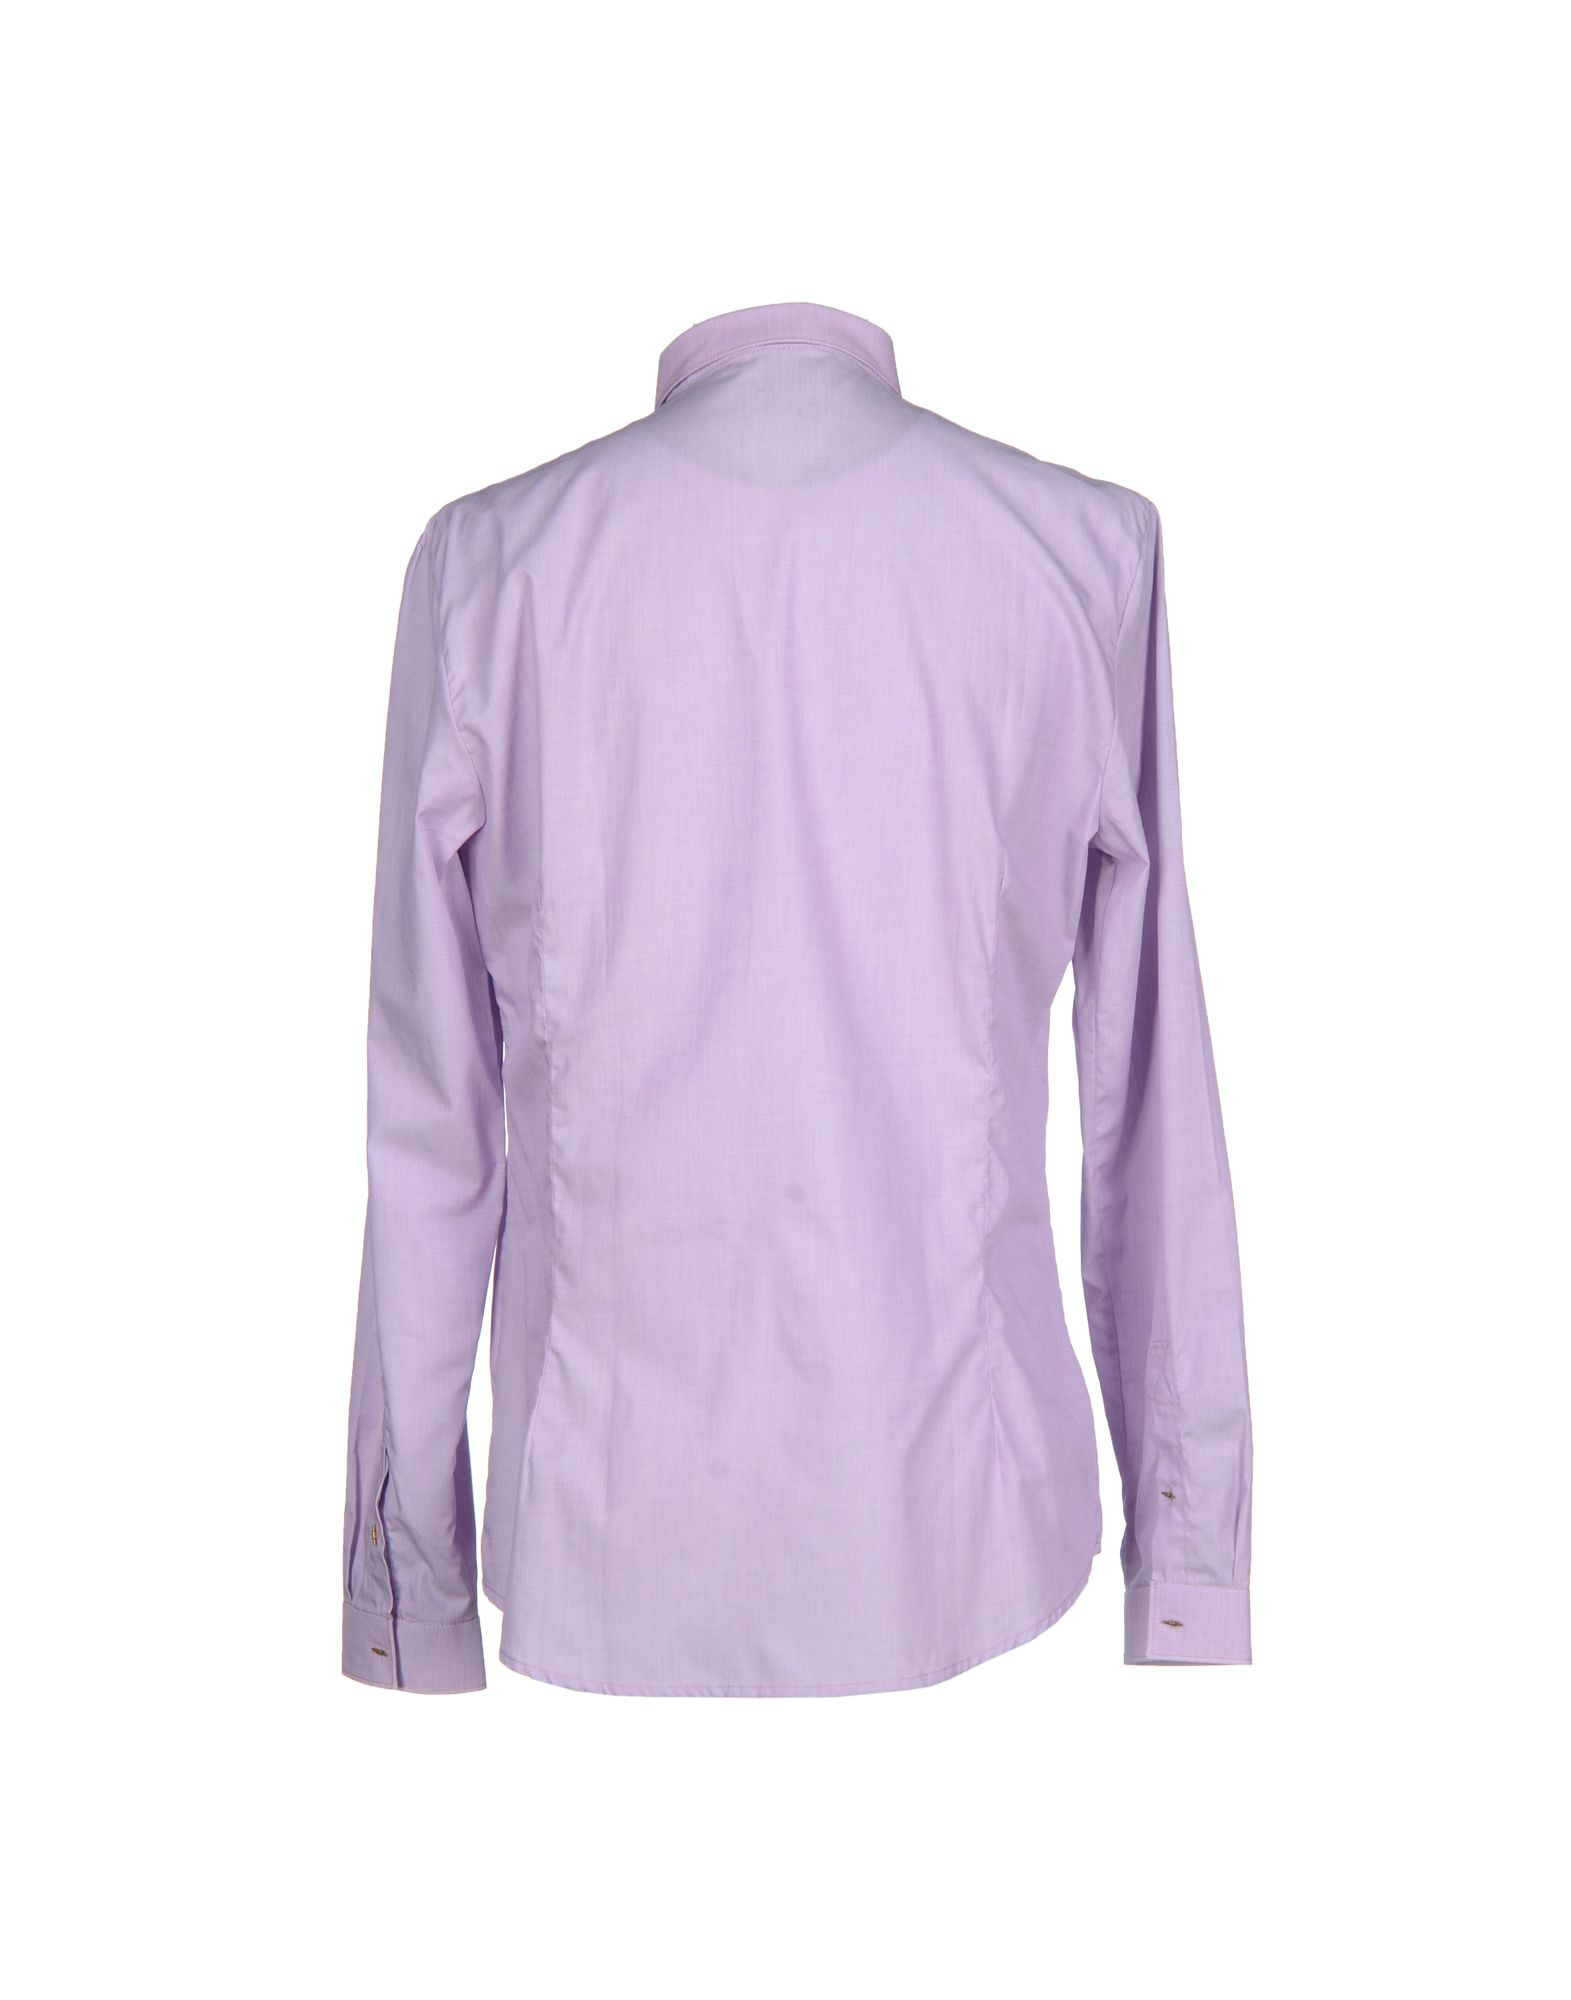 Frankie morello shirt in purple for men lyst Light purple dress shirt men